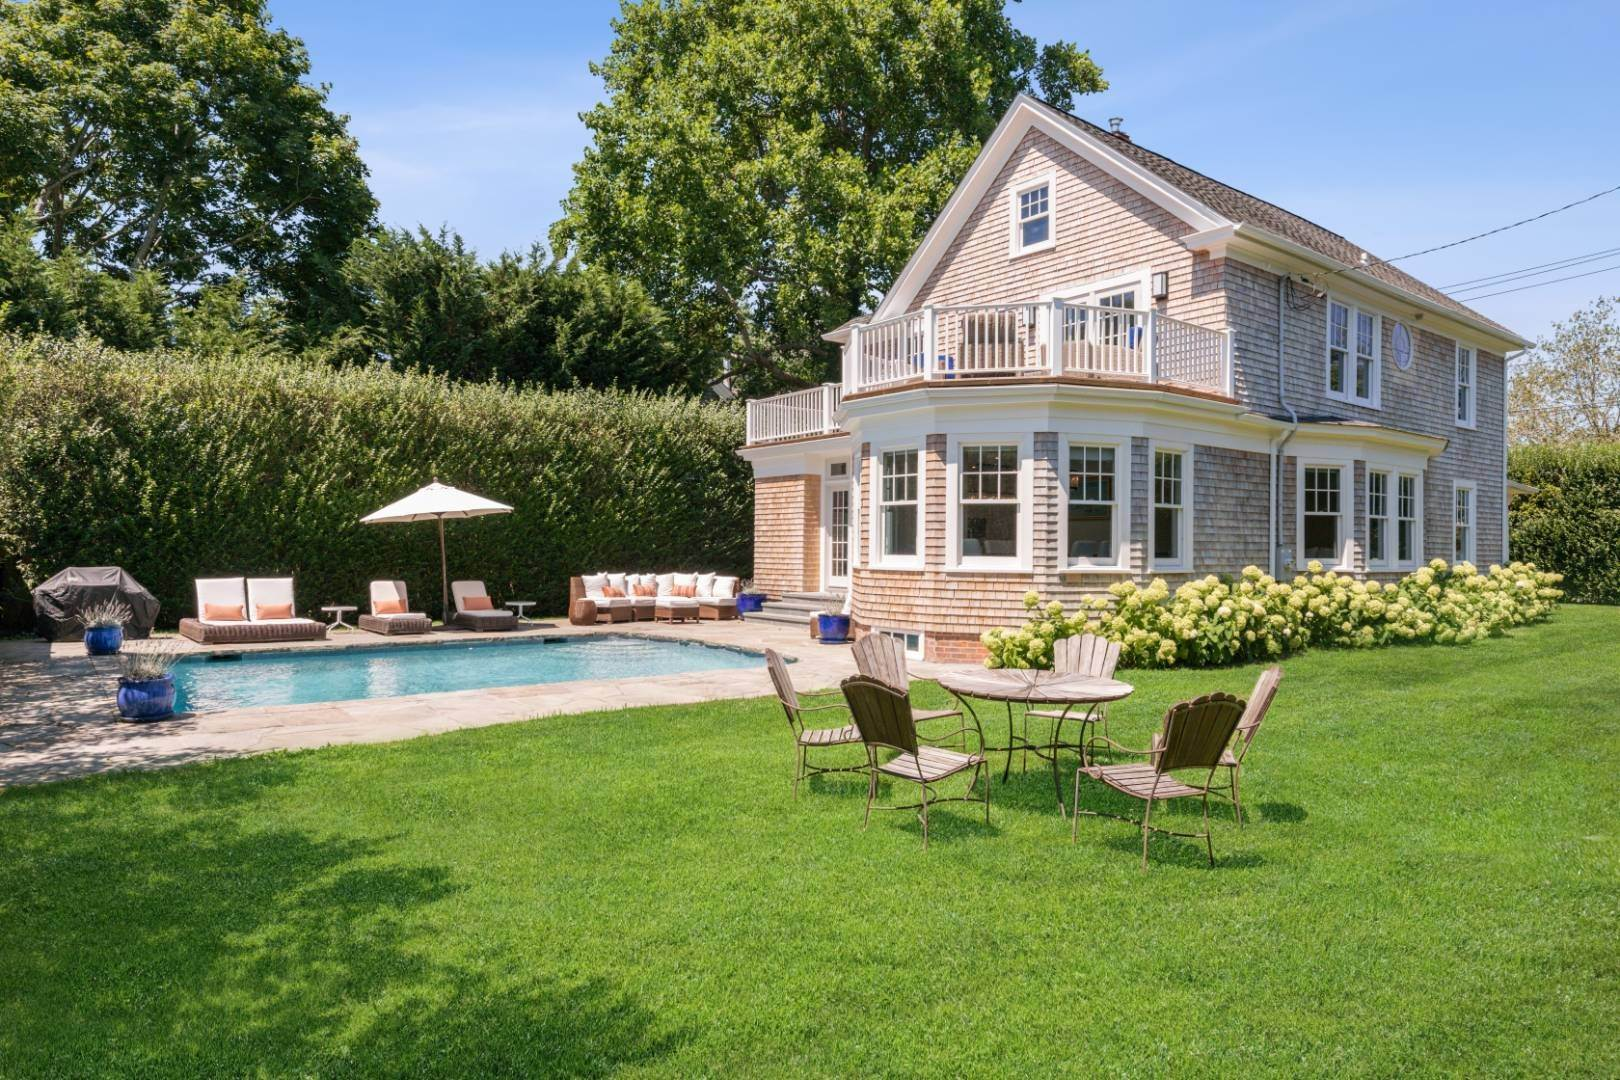 2. Single Family Home at Heart Of The Village-Close To The Ocean Southampton, NY 11968